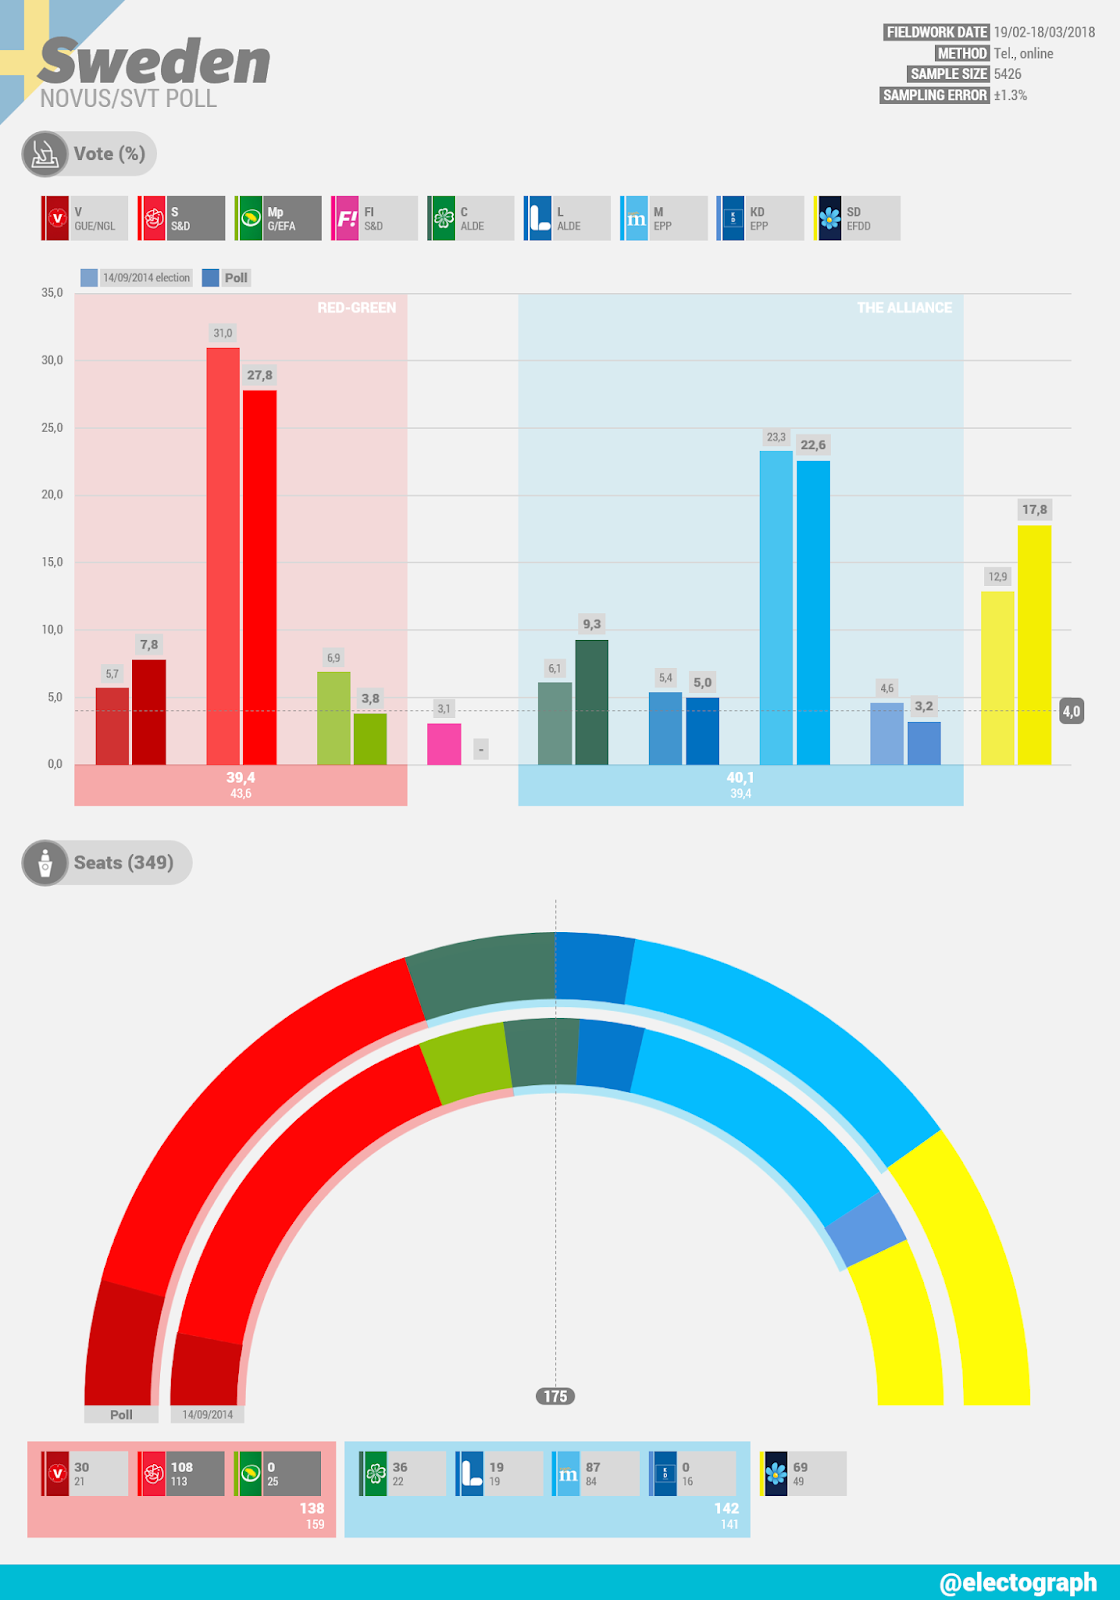 SWEDEN Novus poll chart for SVT, March 2018